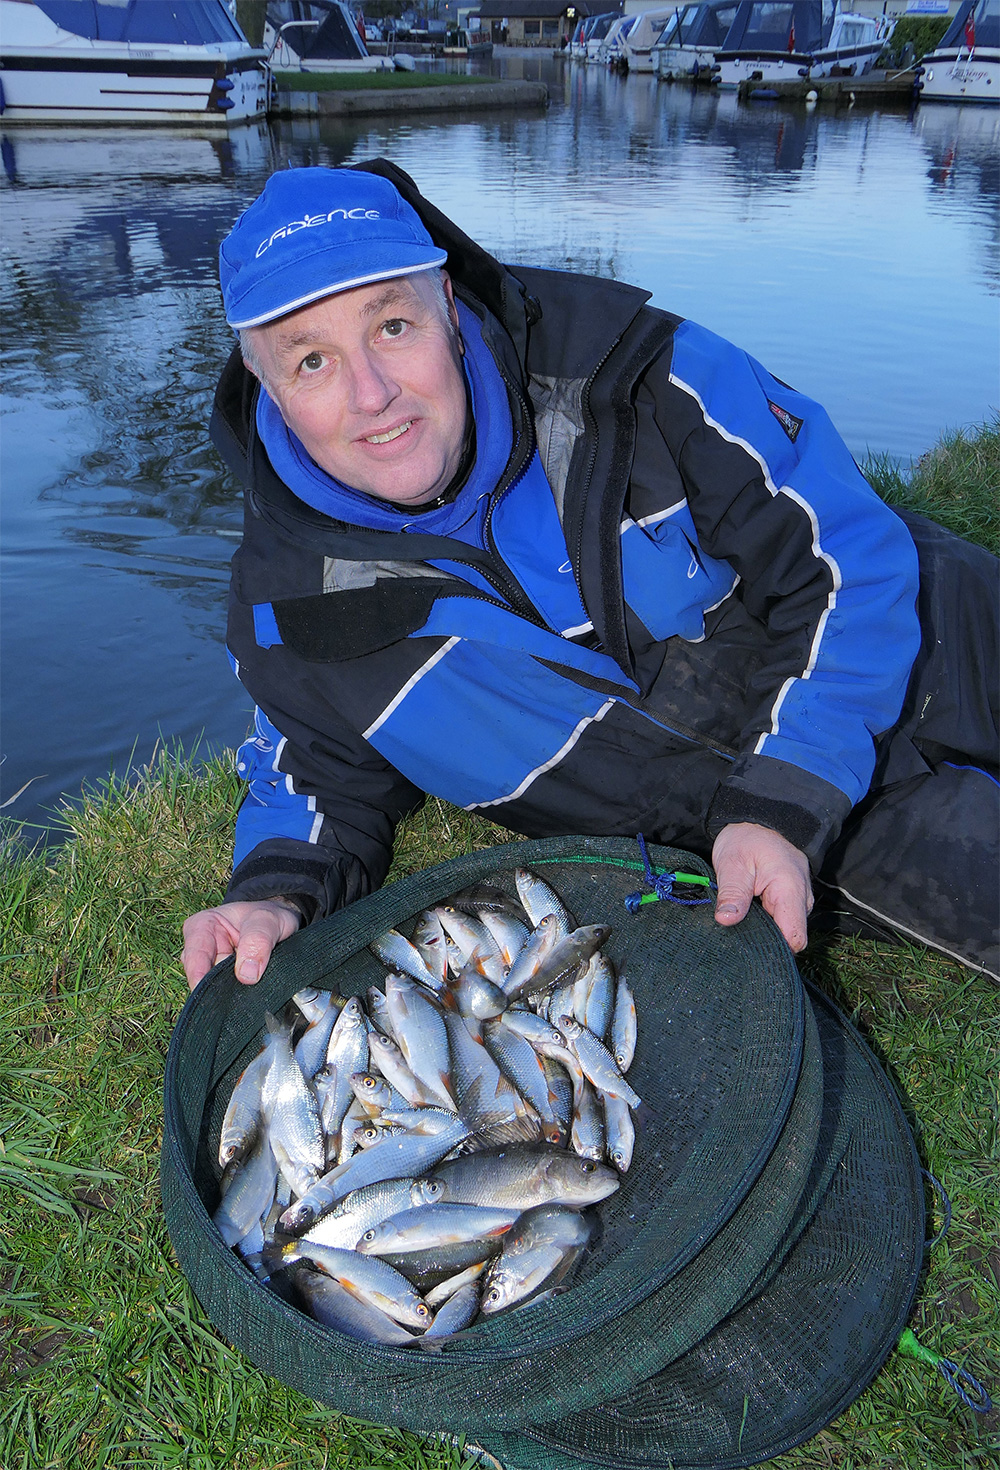 Alan with a hard-earned 6lb net of roach, hybrids and perch.